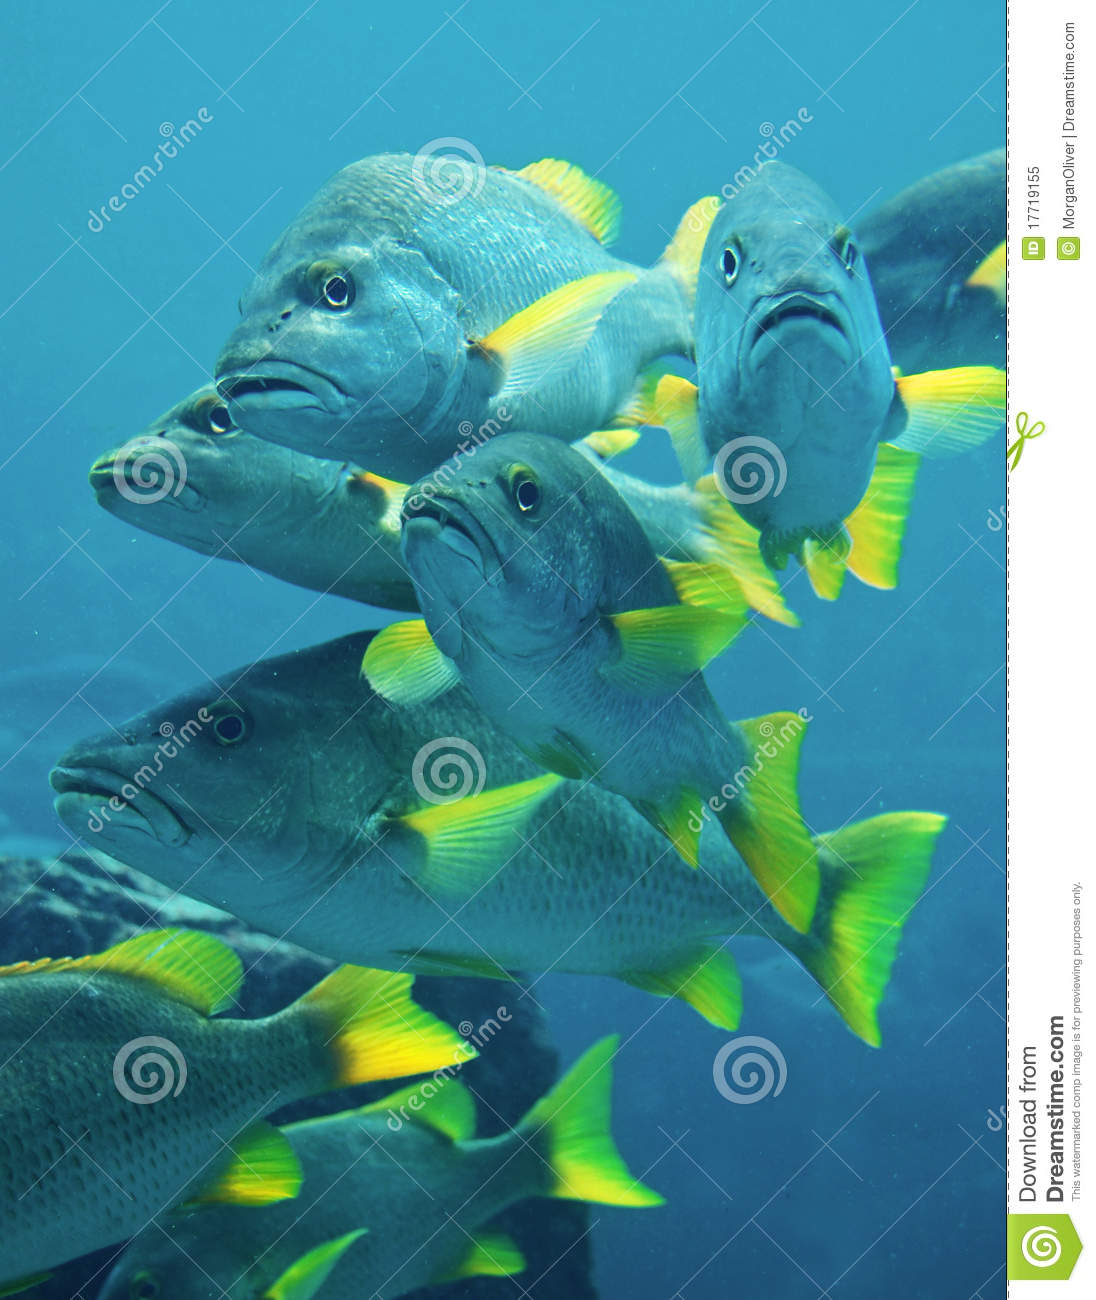 Yellow fin blue fish royalty free stock photo image for Blue fin fish